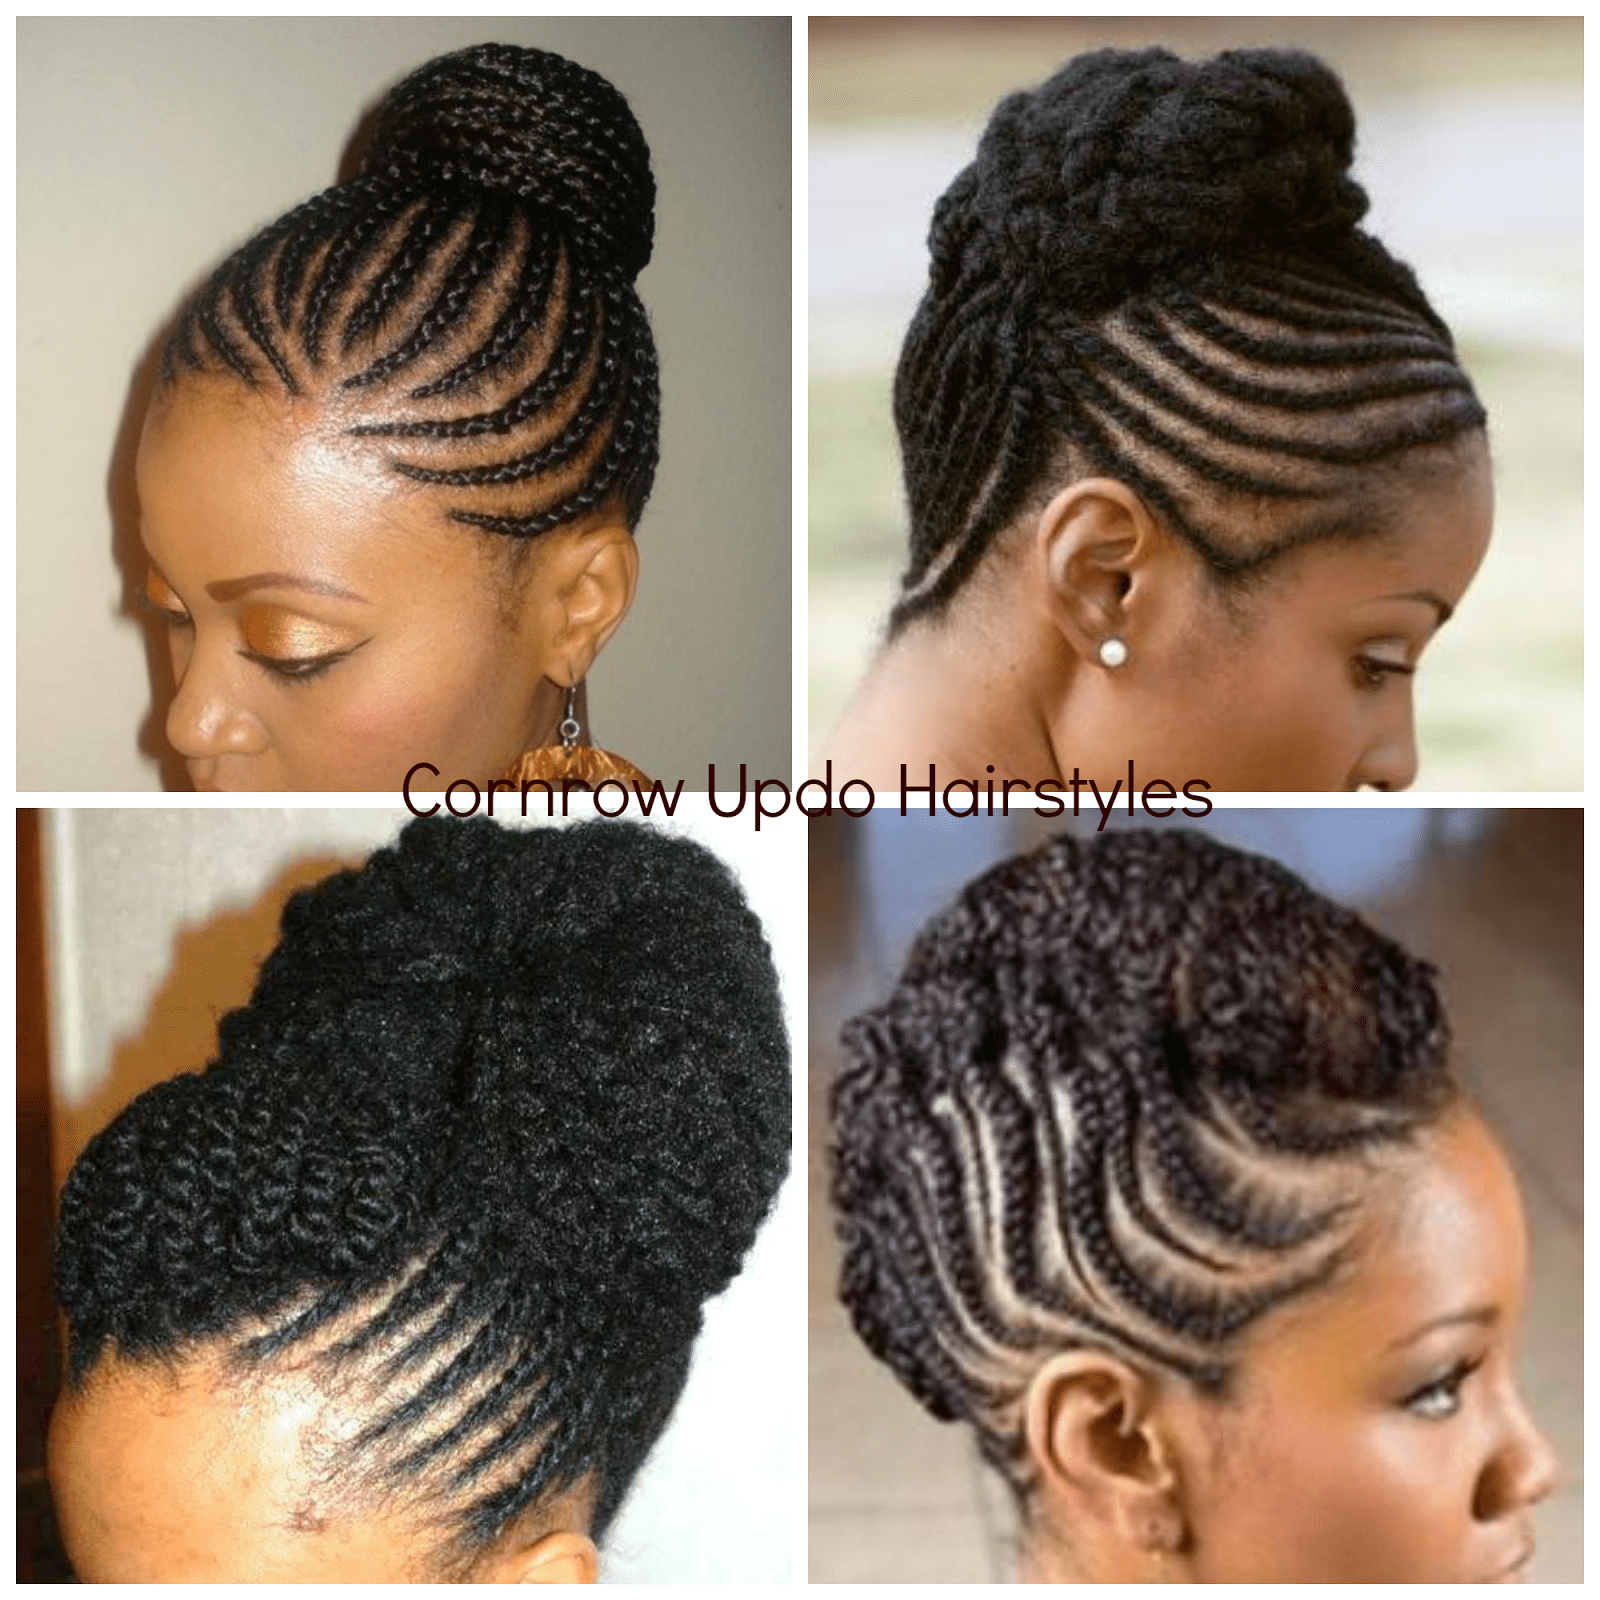 Cornrow Hairstyles for Black Ladies